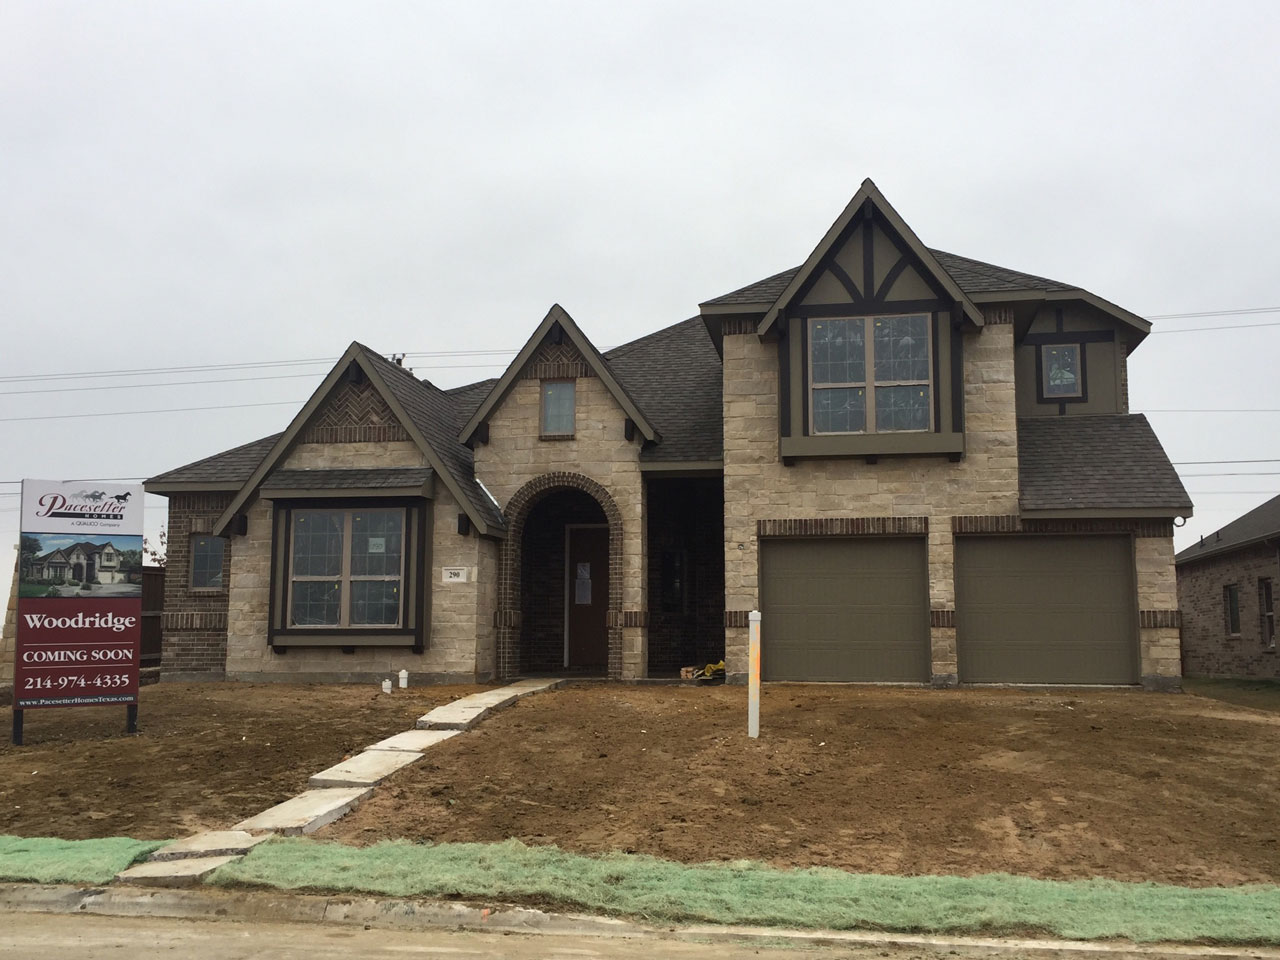 30-ON-THE-FAST-TRACK---PACESETTER-HOMES-EXPANDS-TO-DALLASFORT-WORTH-MARKET-20180103_085853-(3)